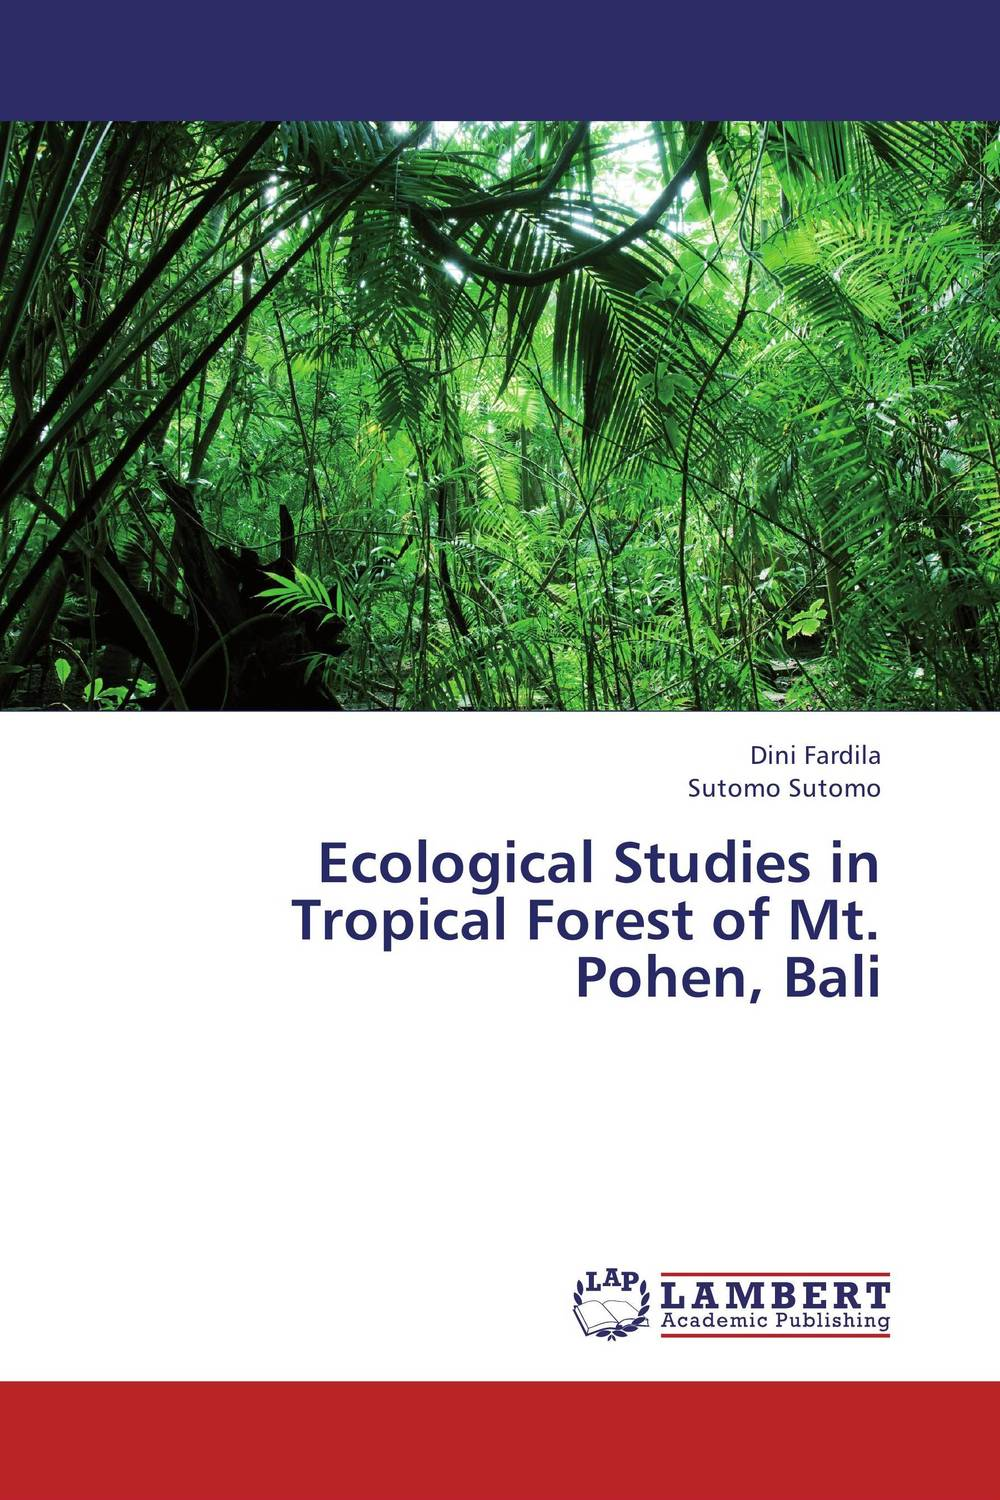 Ecological Studies in Tropical Forest of Mt. Pohen, Bali biodiversity of chapredi reserve forest